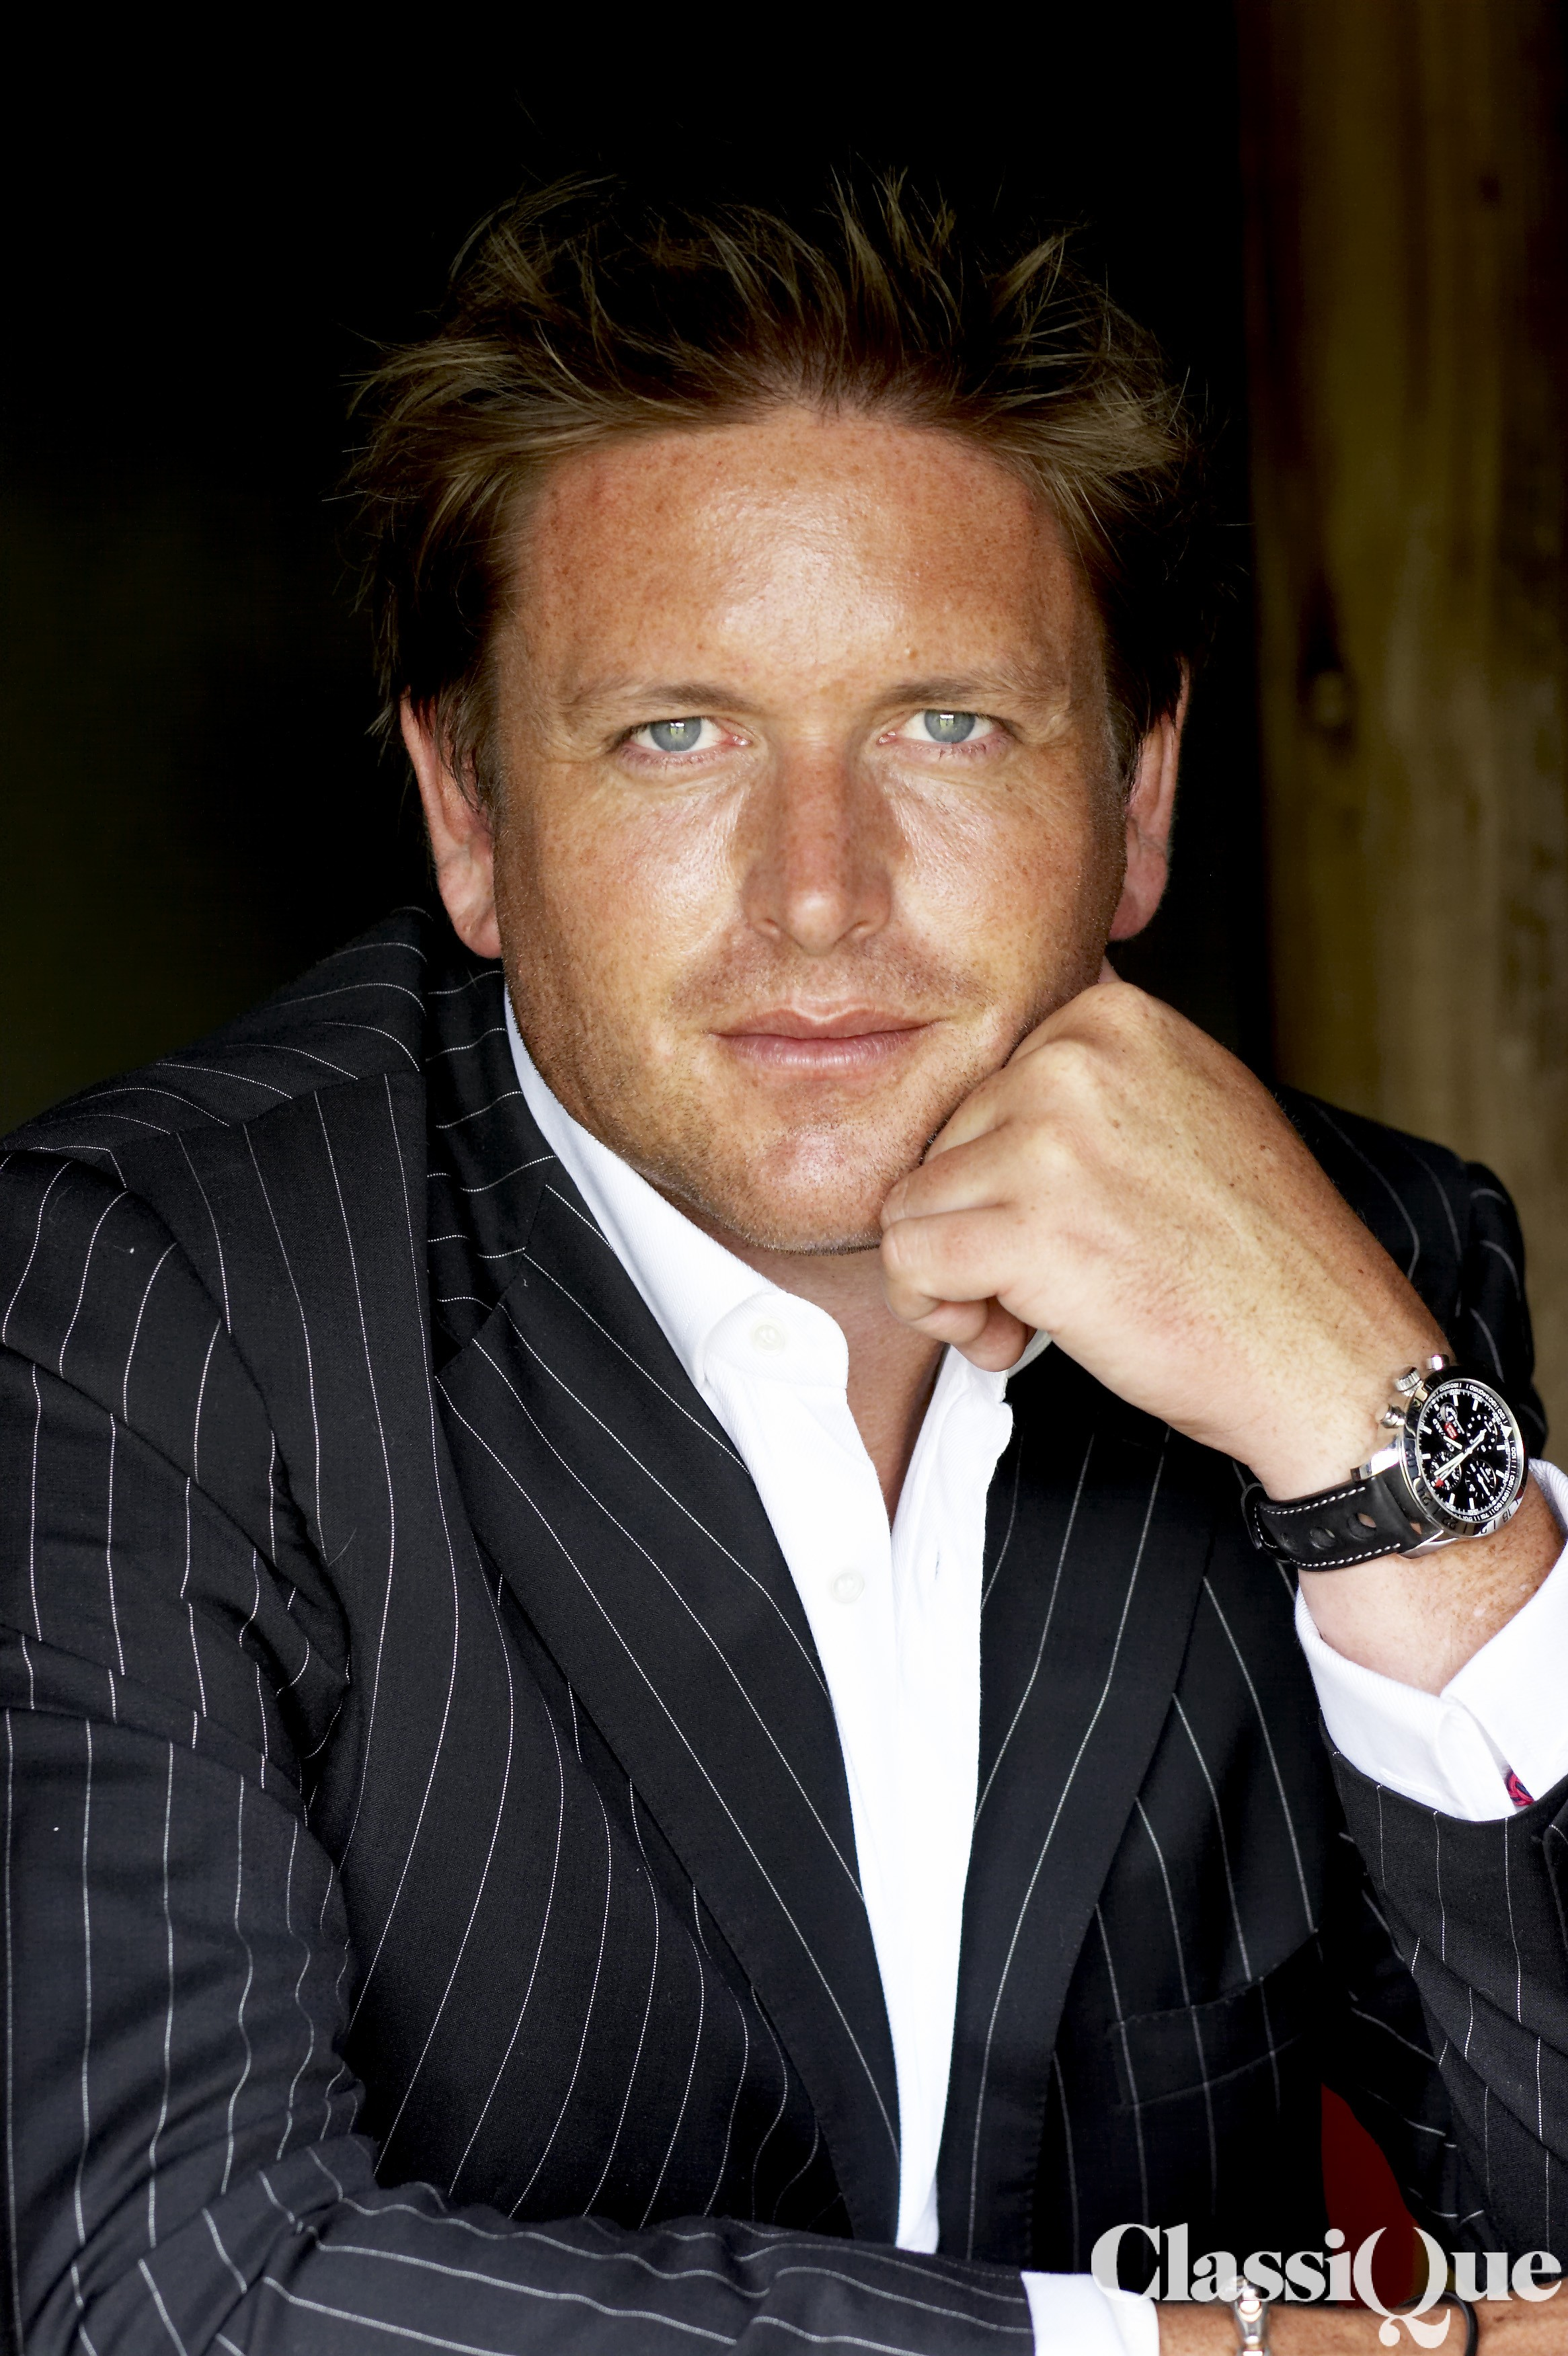 James Martin Company James Martin Hire And Book For Parties And Events Classique